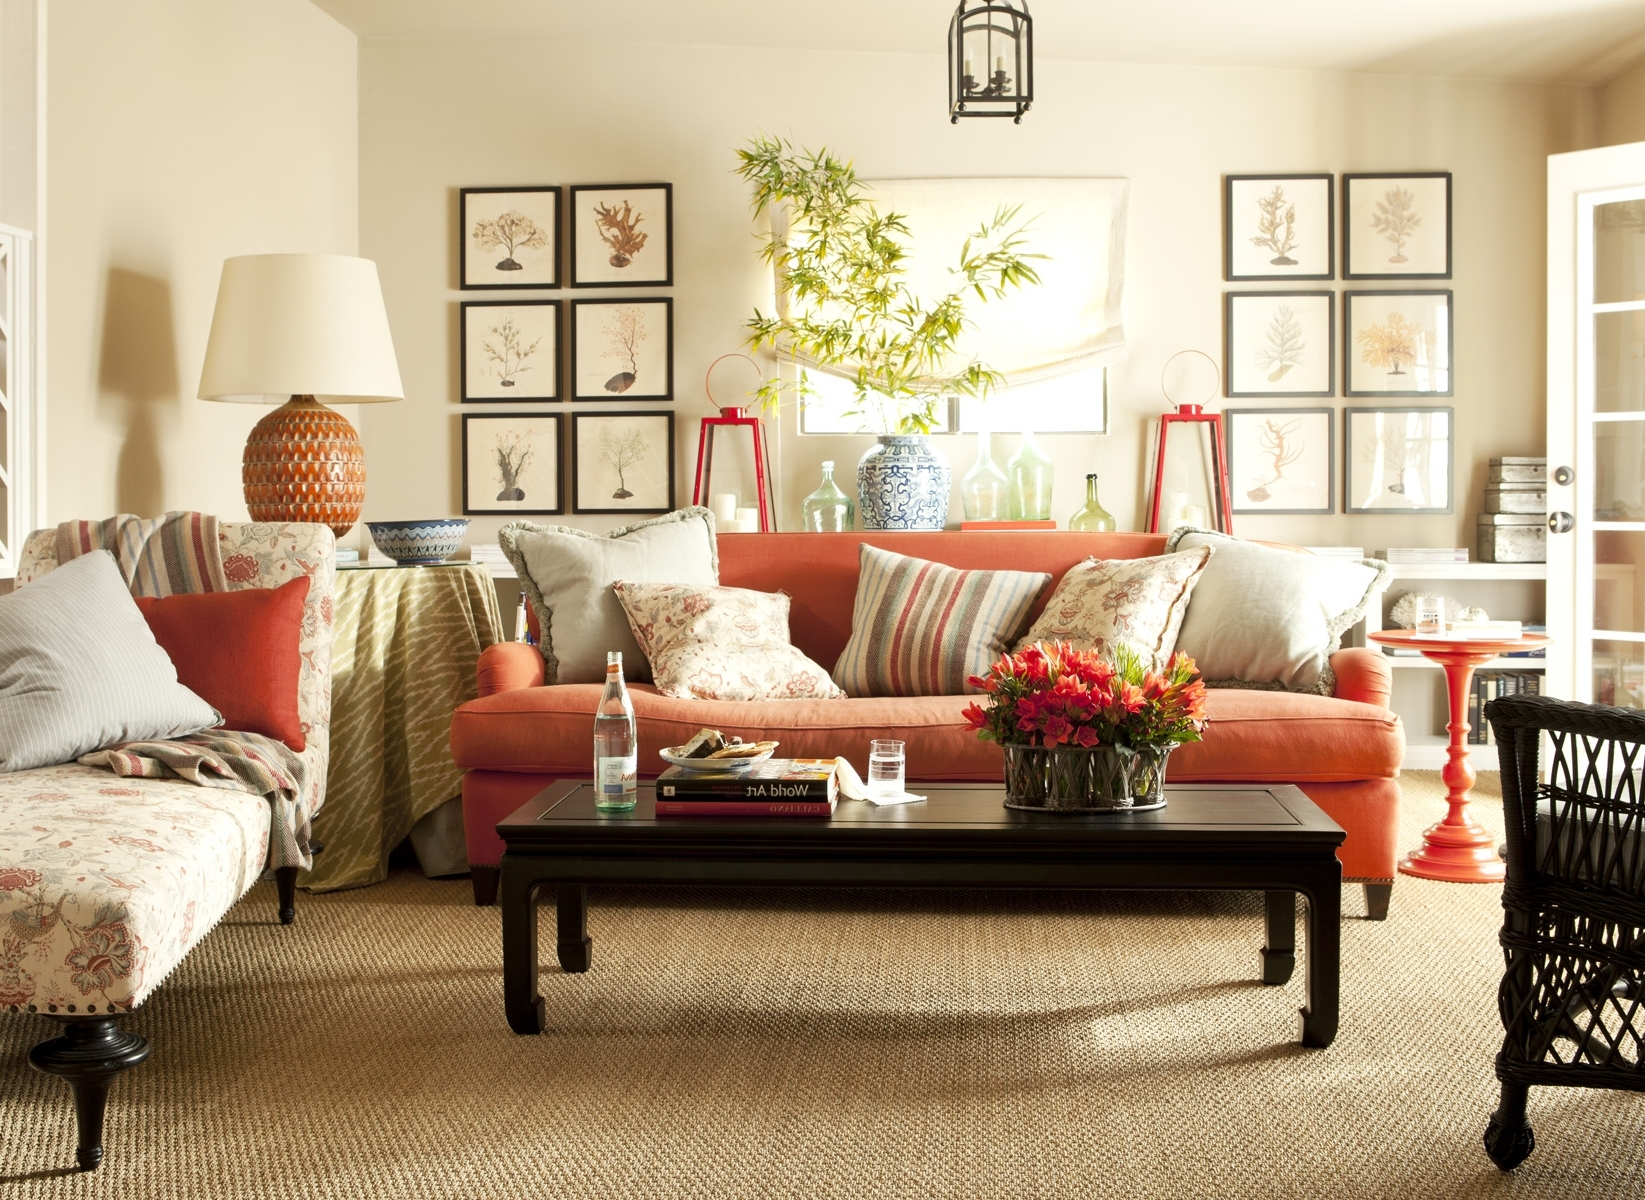 Most Recently Released Colorful Sofas And Chairs In Living Room: Living Room Design Ideas Bright Colorful Sofa Design (View 11 of 15)